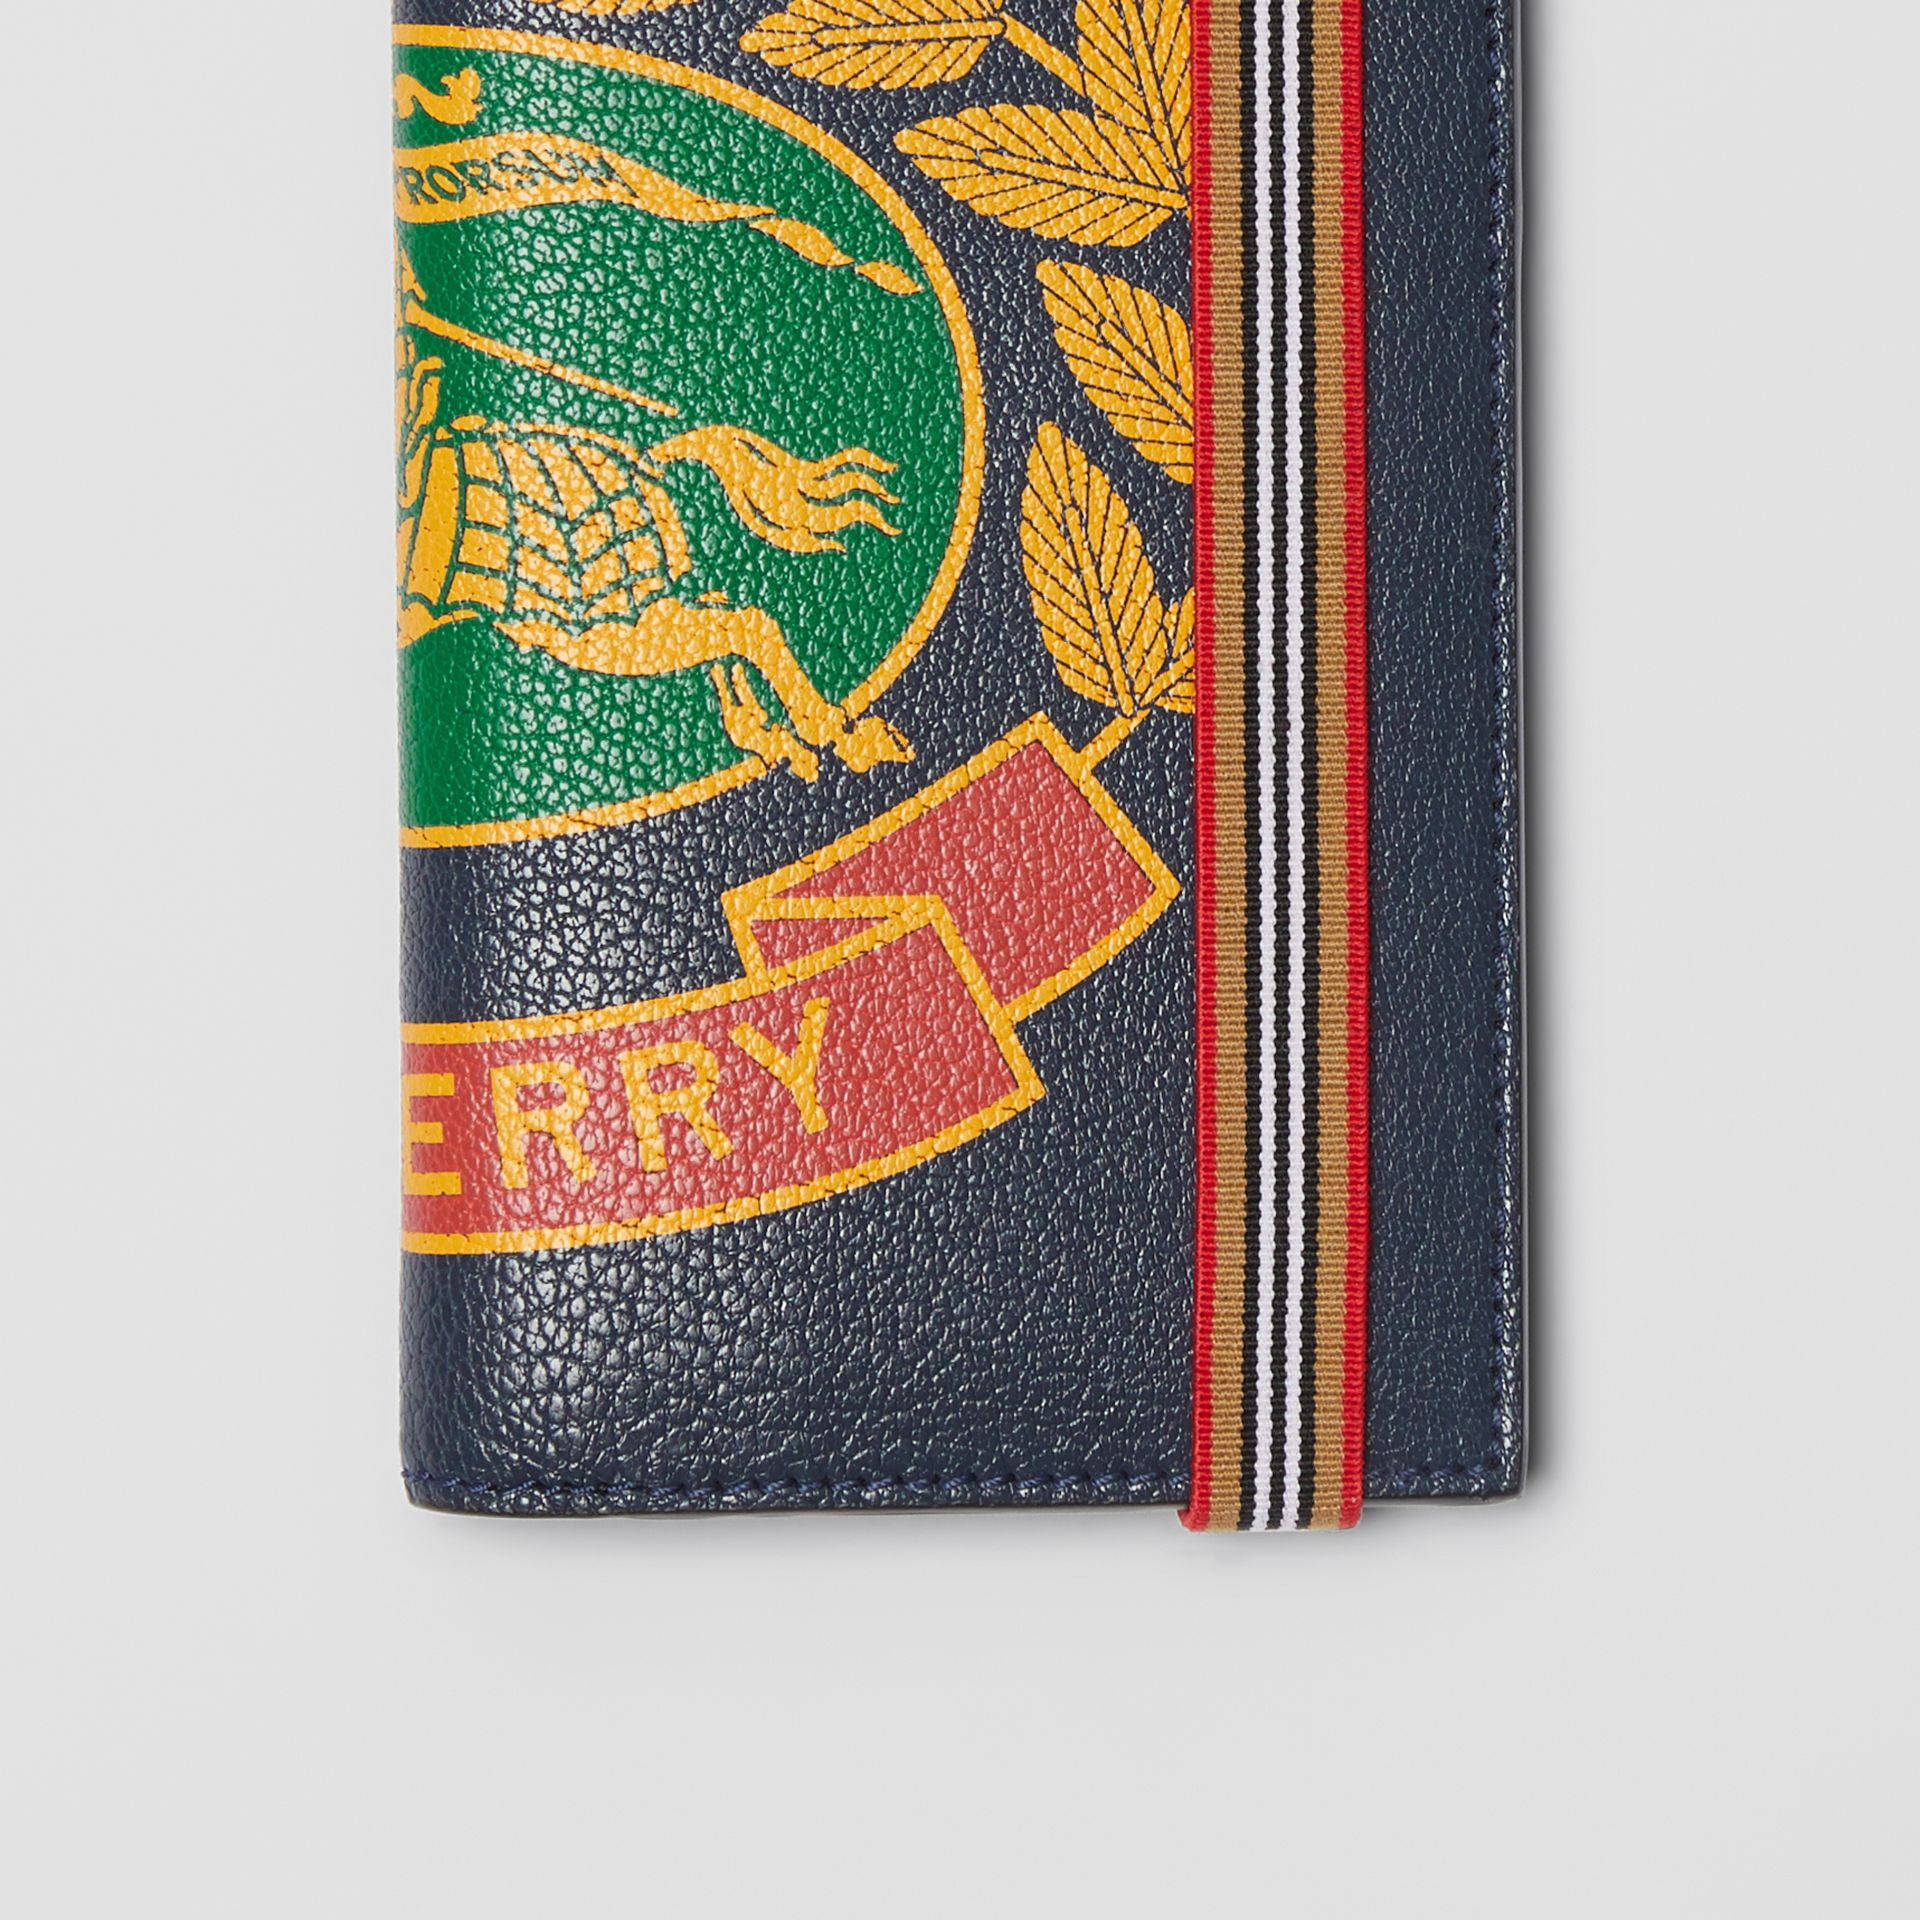 Crest Print Leather Continental Wallet in Storm Blue - Men | Burberry United States - gallery image 1